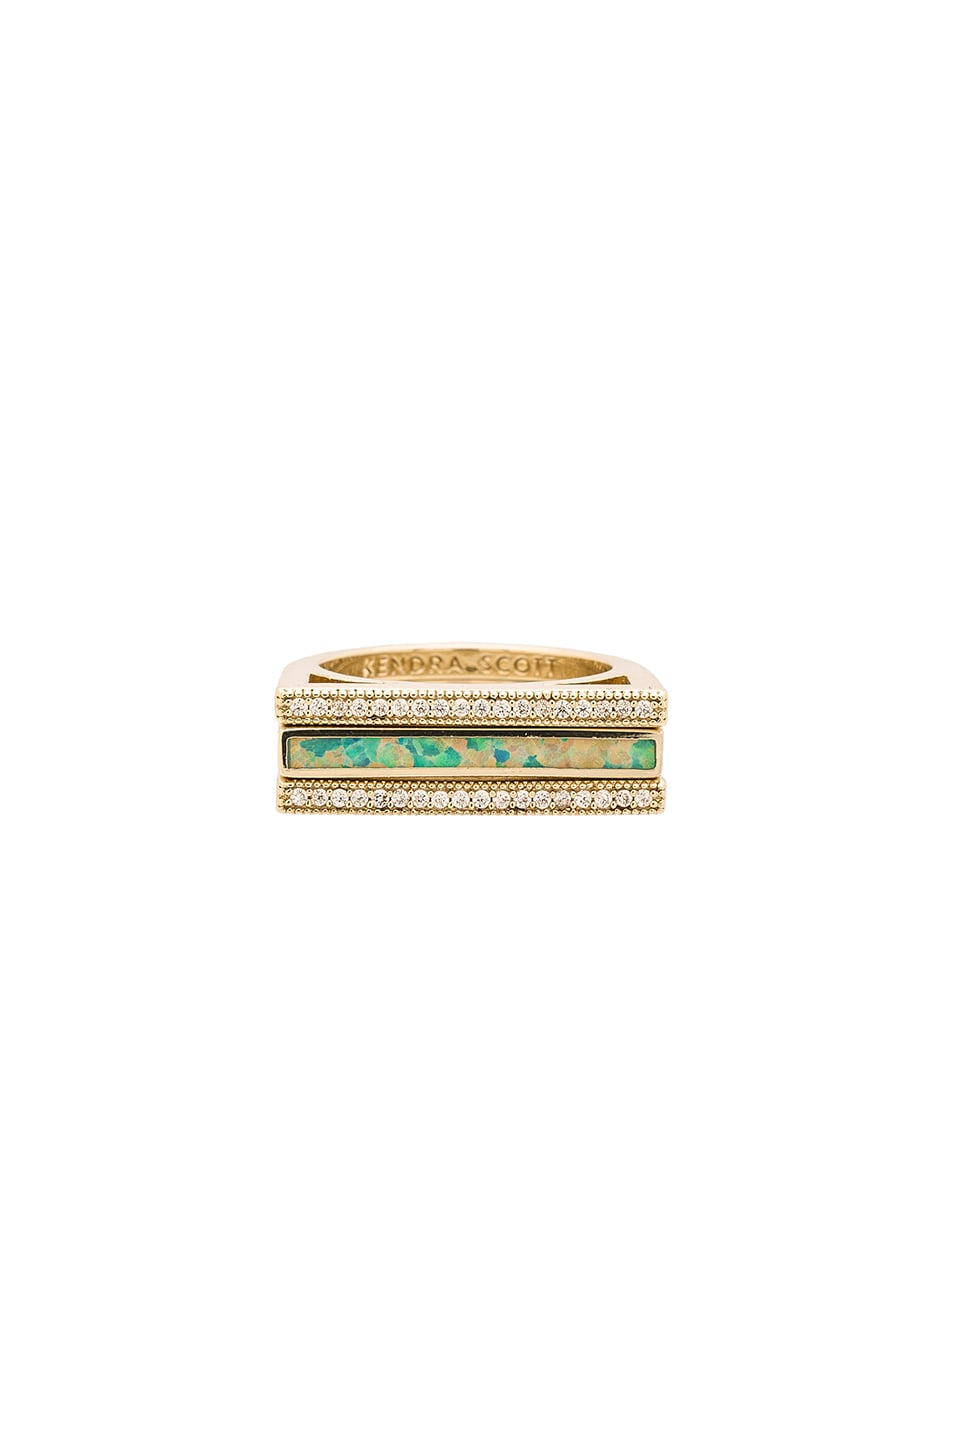 Kendra Scott Lucia Set Of 3 Ring in Gold, Aqua Kyocera Opal & White CZ Pave